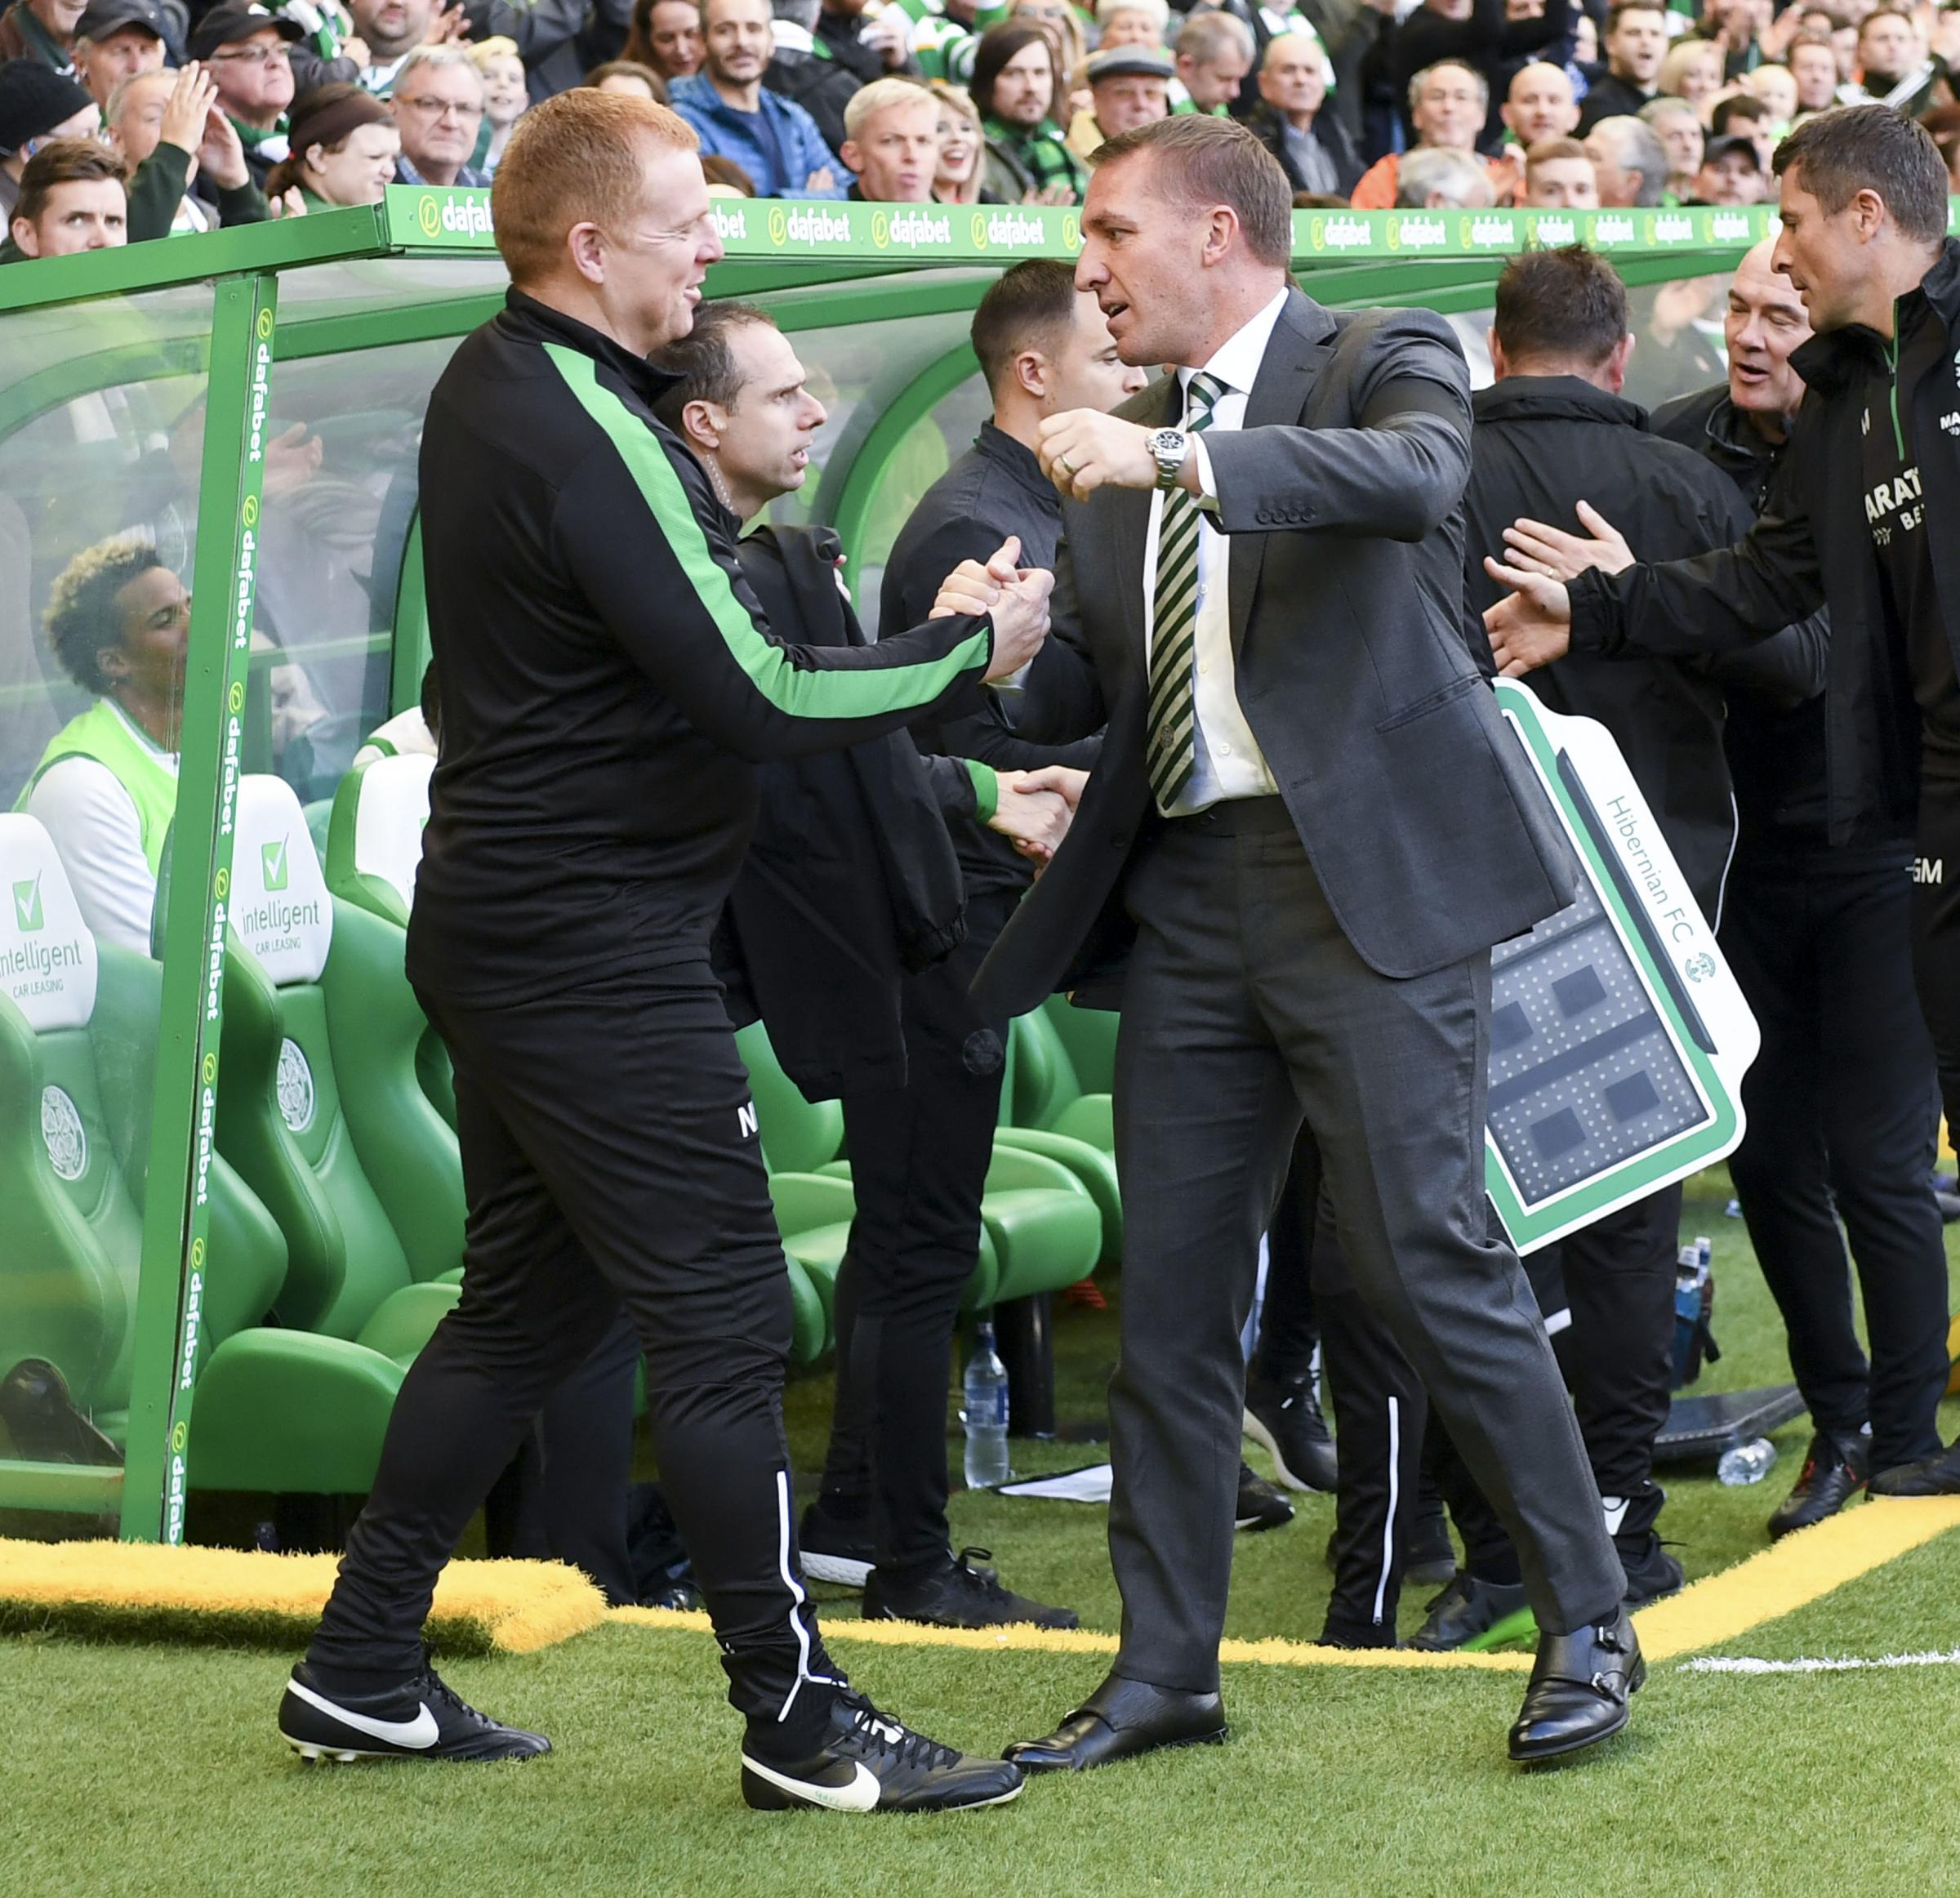 Neil Lennon has praised Brendan Rodgers recently, but Celtic fans are still hurting over the manner of his departure.